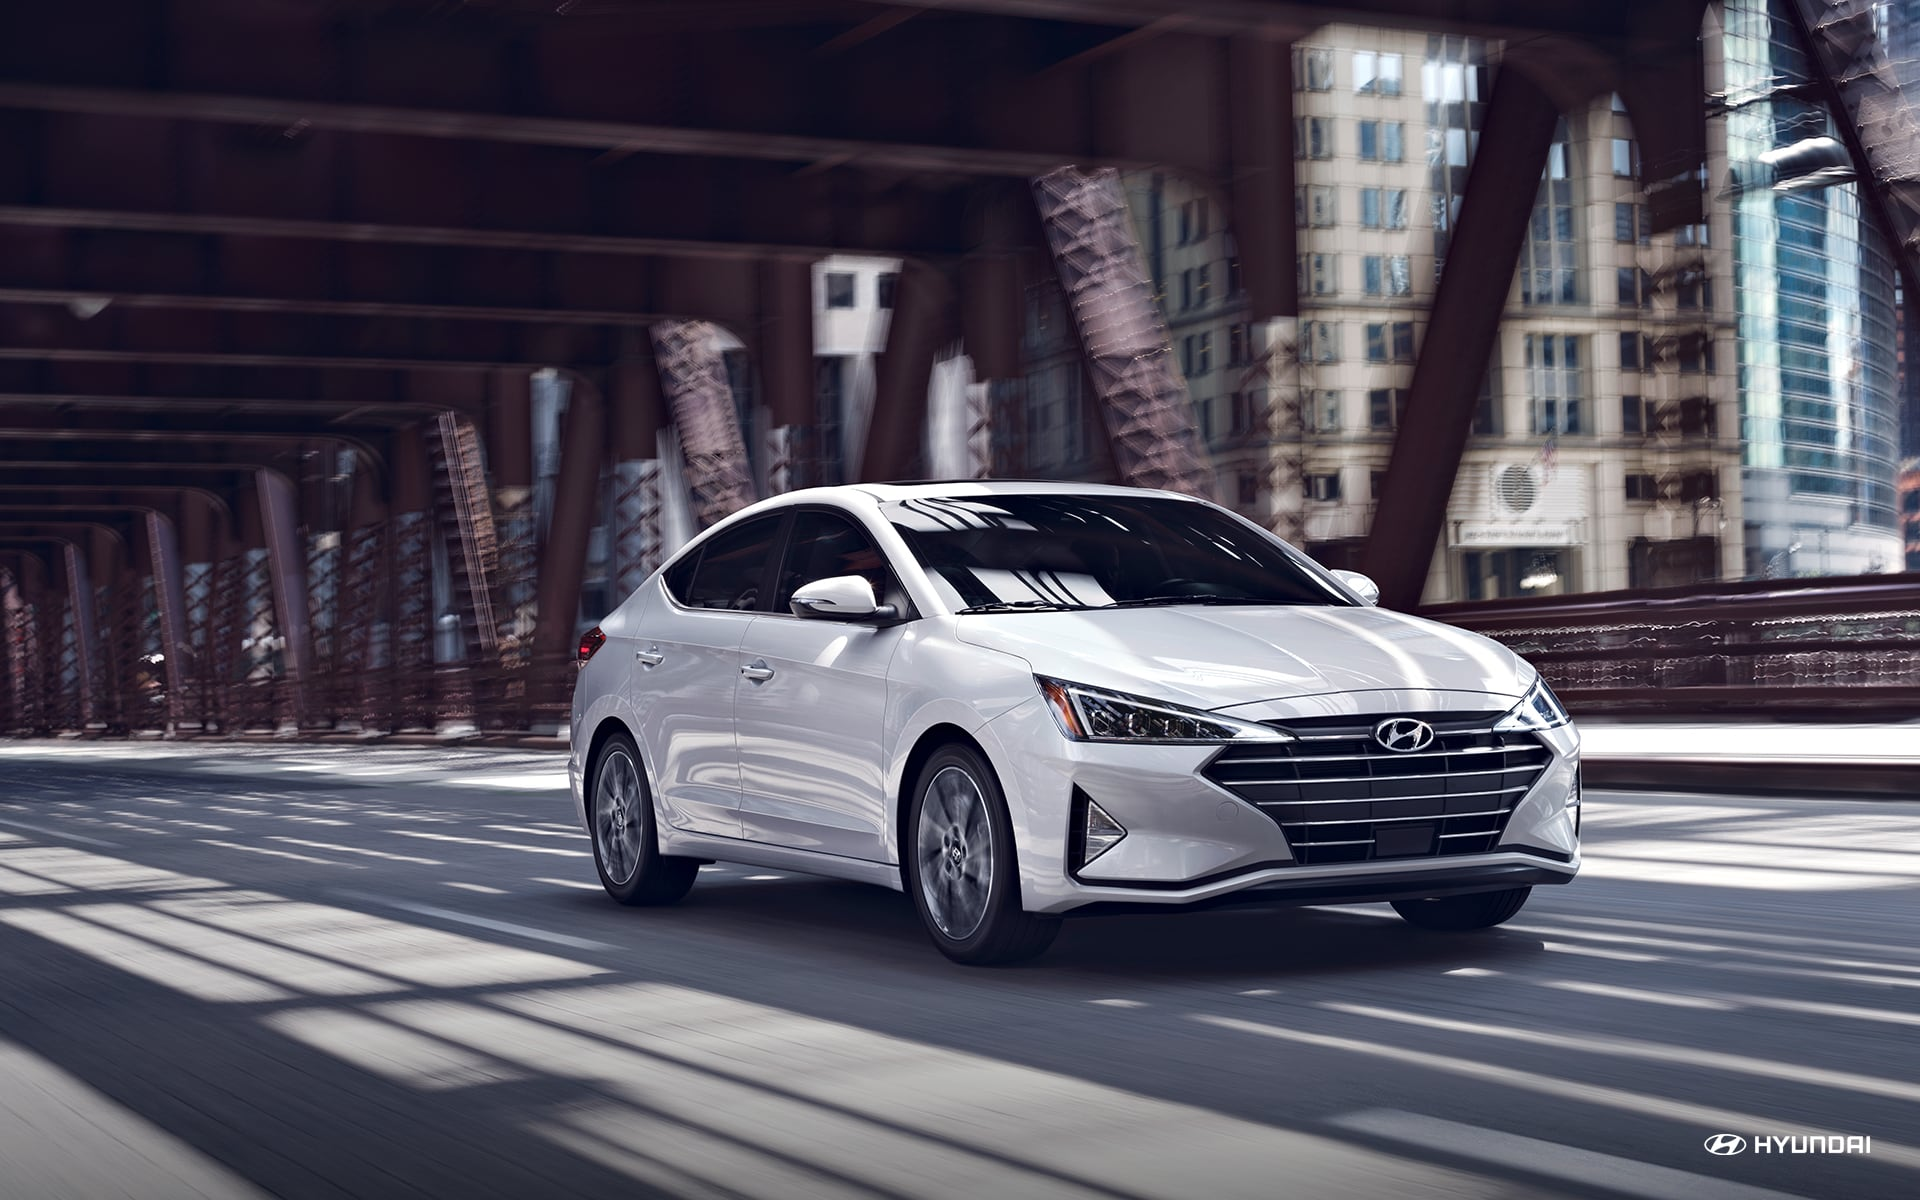 2019 Hyundai Elantra vs Ford Focus Exterior near Bolingbrook, IL